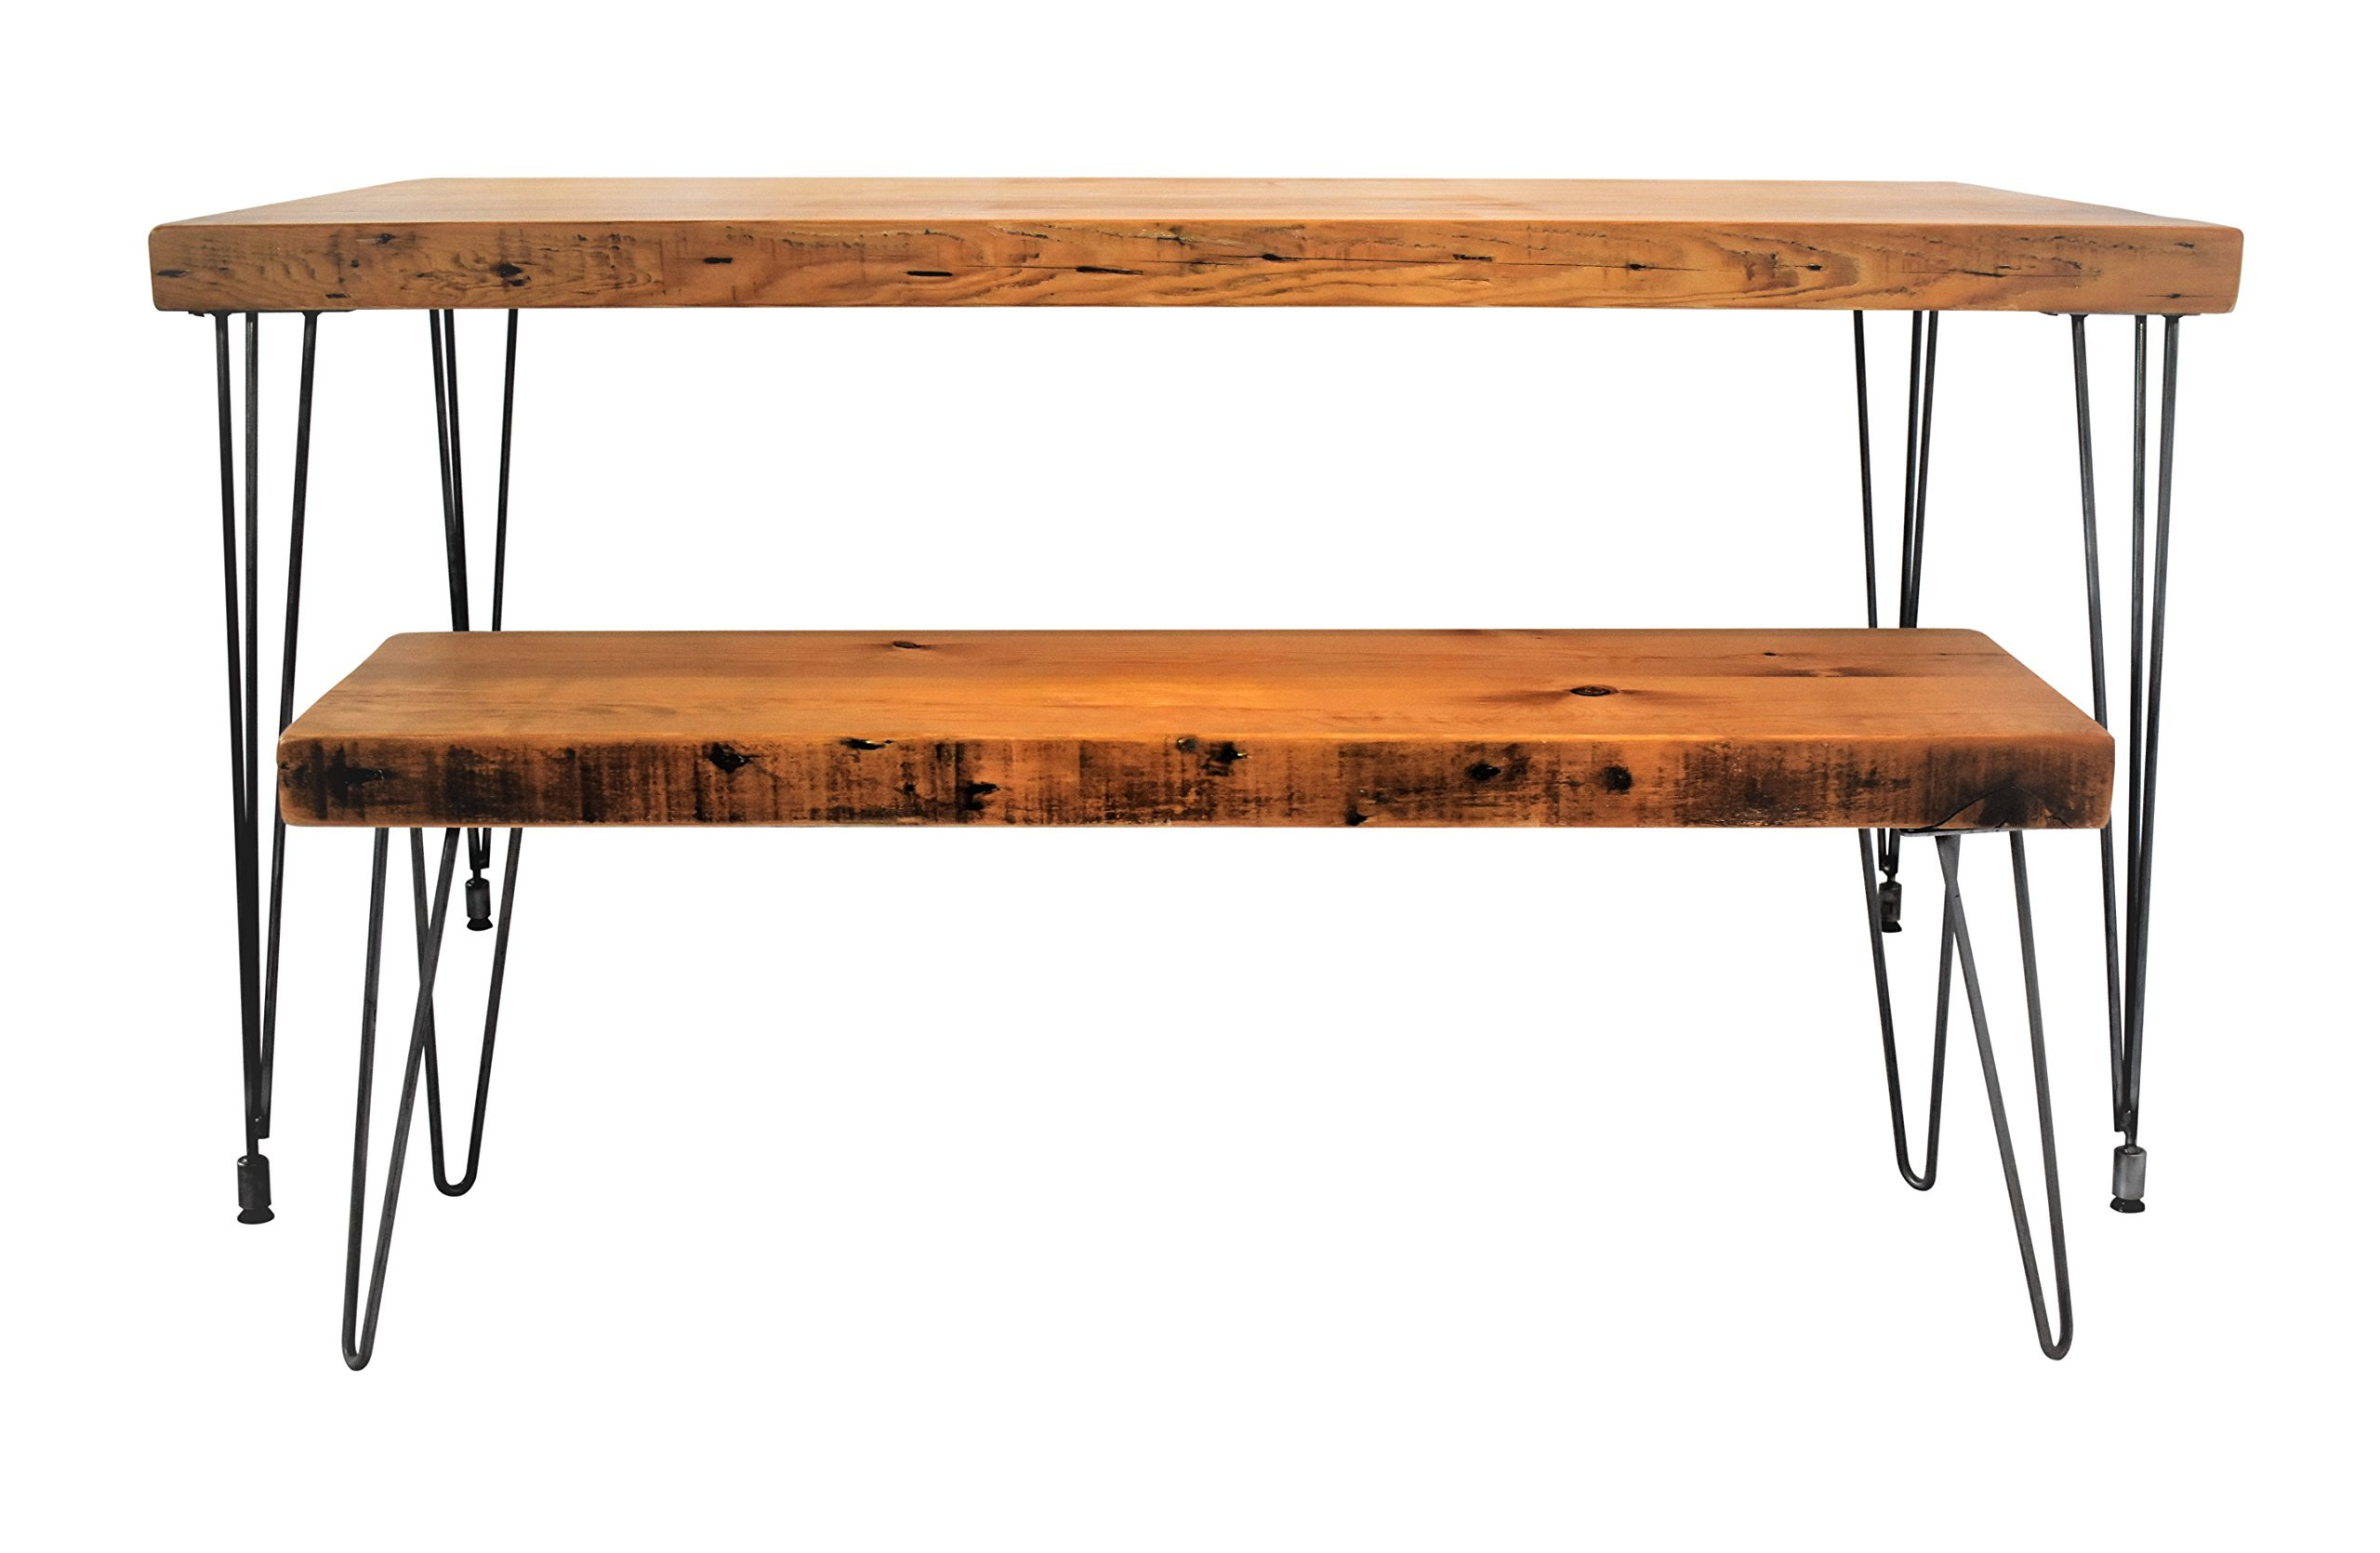 Handmade Reclaimed Wood Dining Table | Salvaged Barn wood | 1.65 Inches Thick | 24 Inches Wide | FREE SHIPPING -  - kitchen-dining-room-furniture, kitchen-dining-room, kitchen-dining-room-tables - 813Au4XAchL -